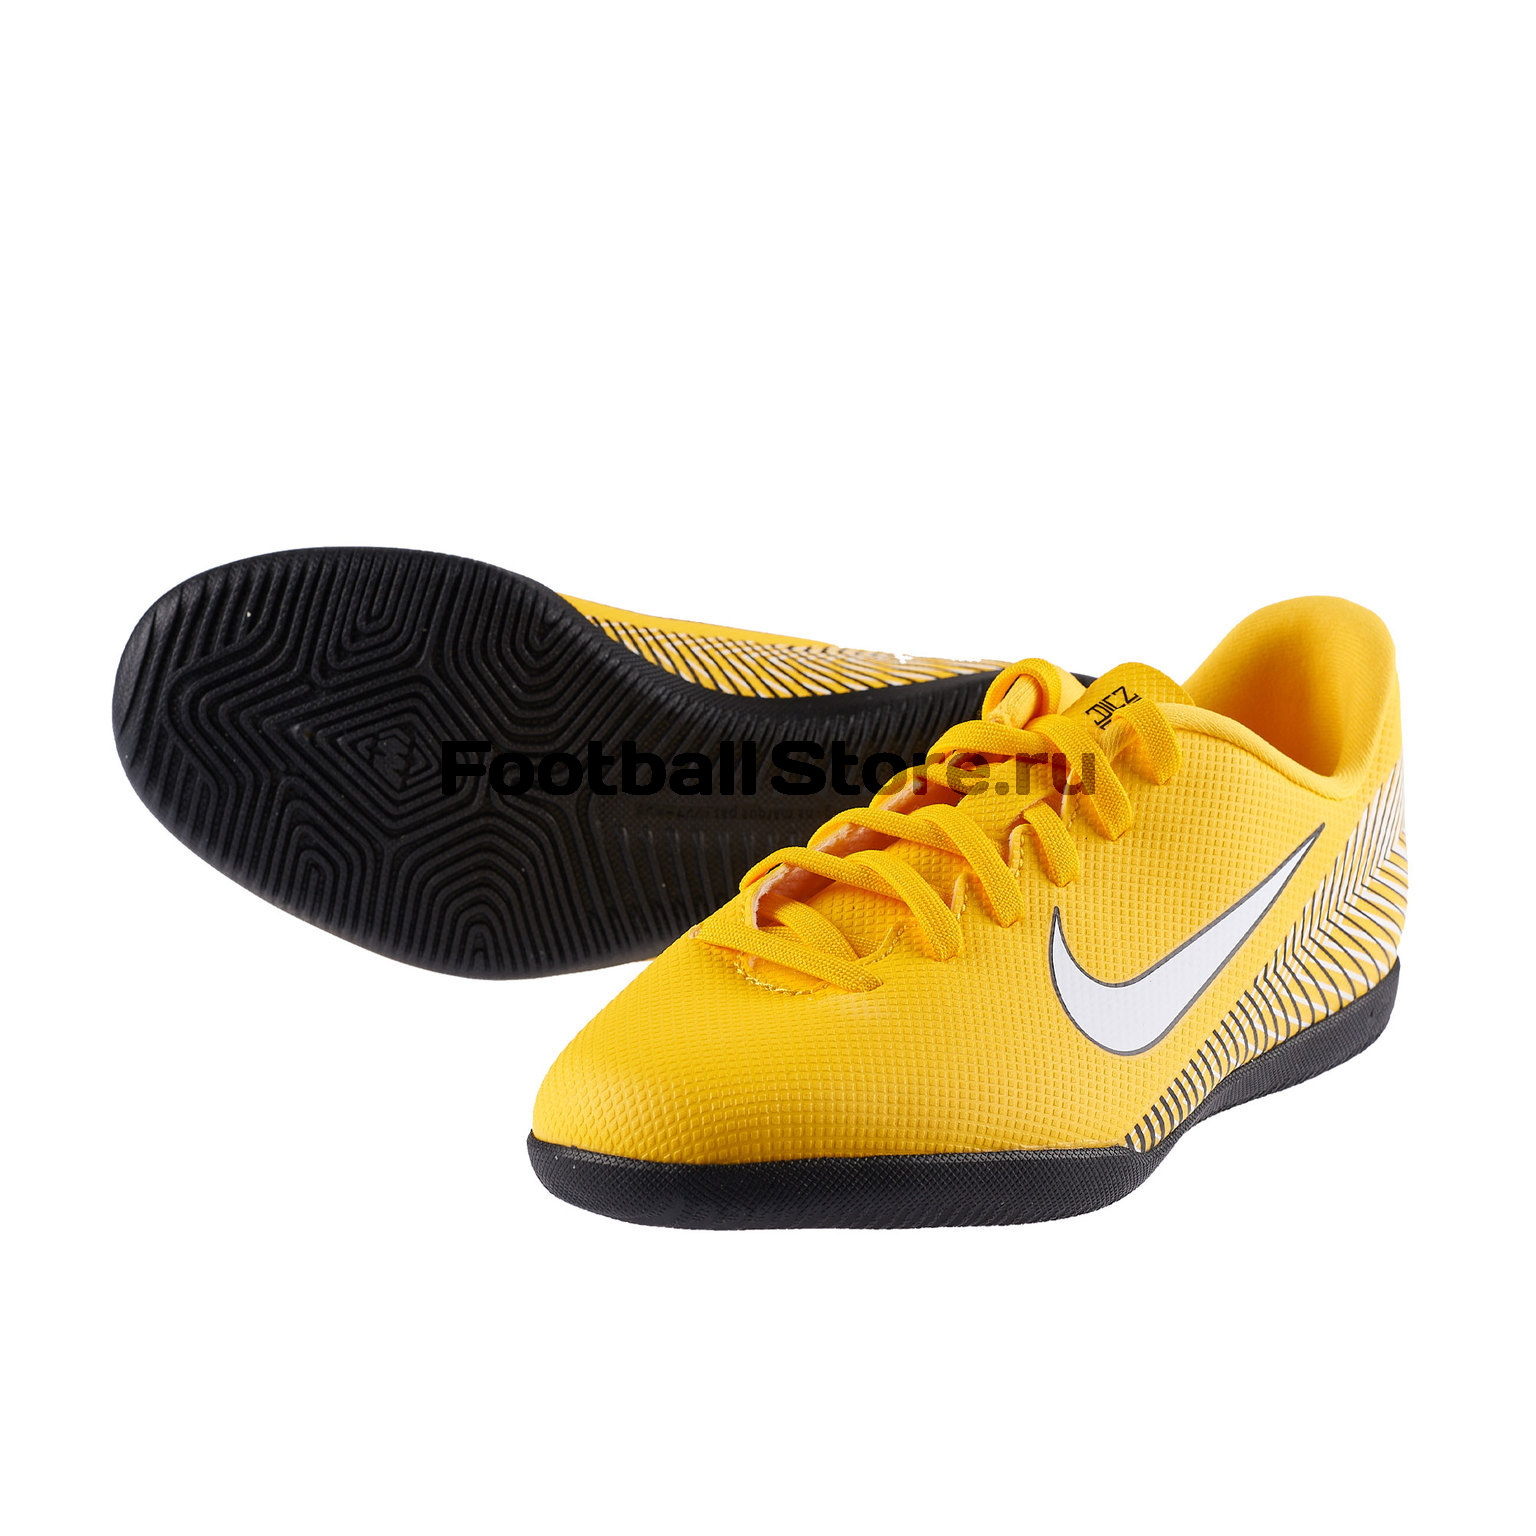 Обувь для зала Nike JR Vapor 12 Club GS Neymar IC AO9477-710 спортинвентарь nike чехол для iphone 6 на руку nike vapor flash arm band 2 0 n rn 50 078 os